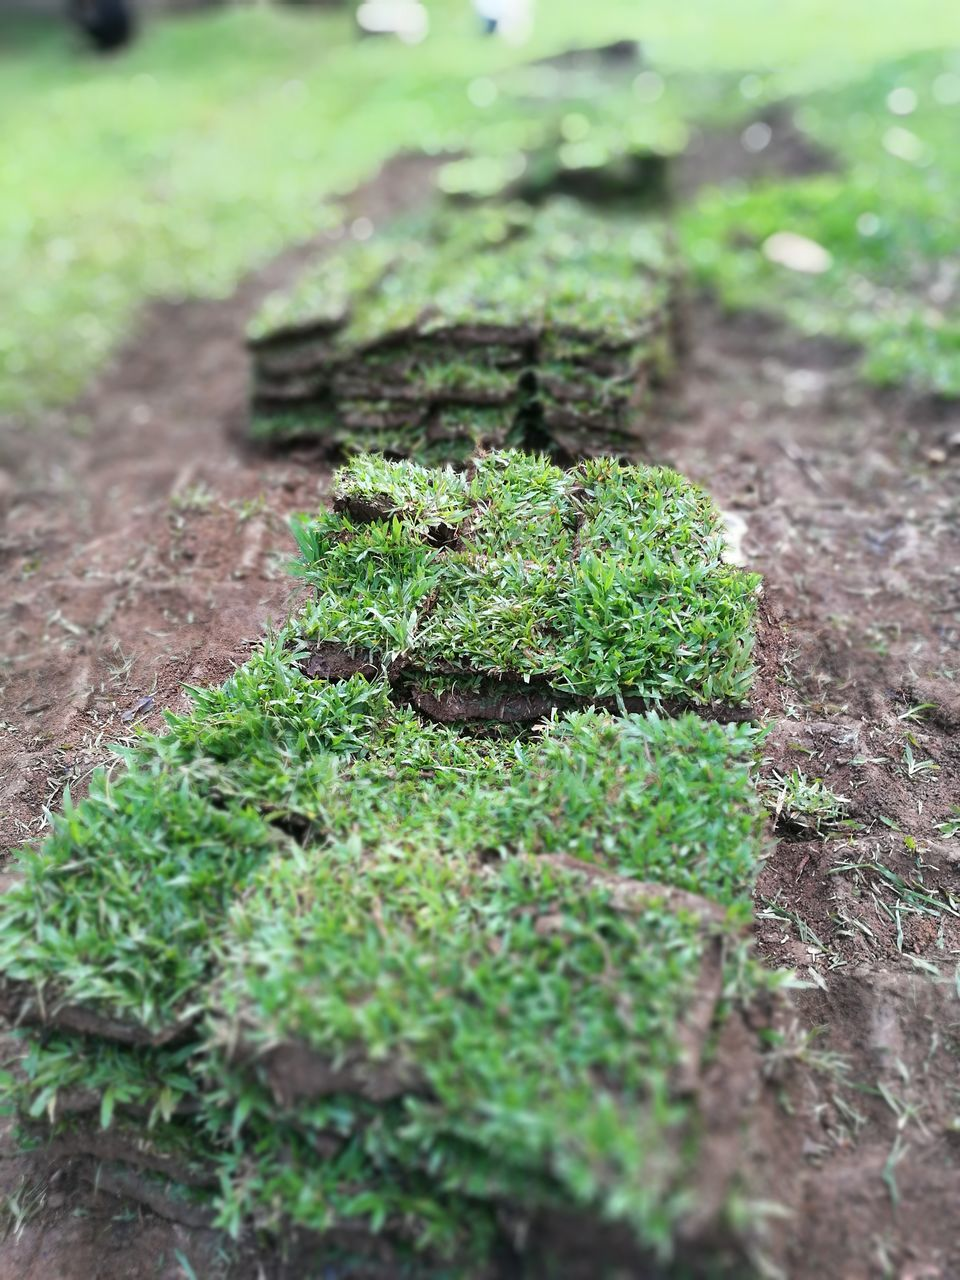 growth, green color, nature, plant, selective focus, no people, outdoors, day, field, moss, beauty in nature, close-up